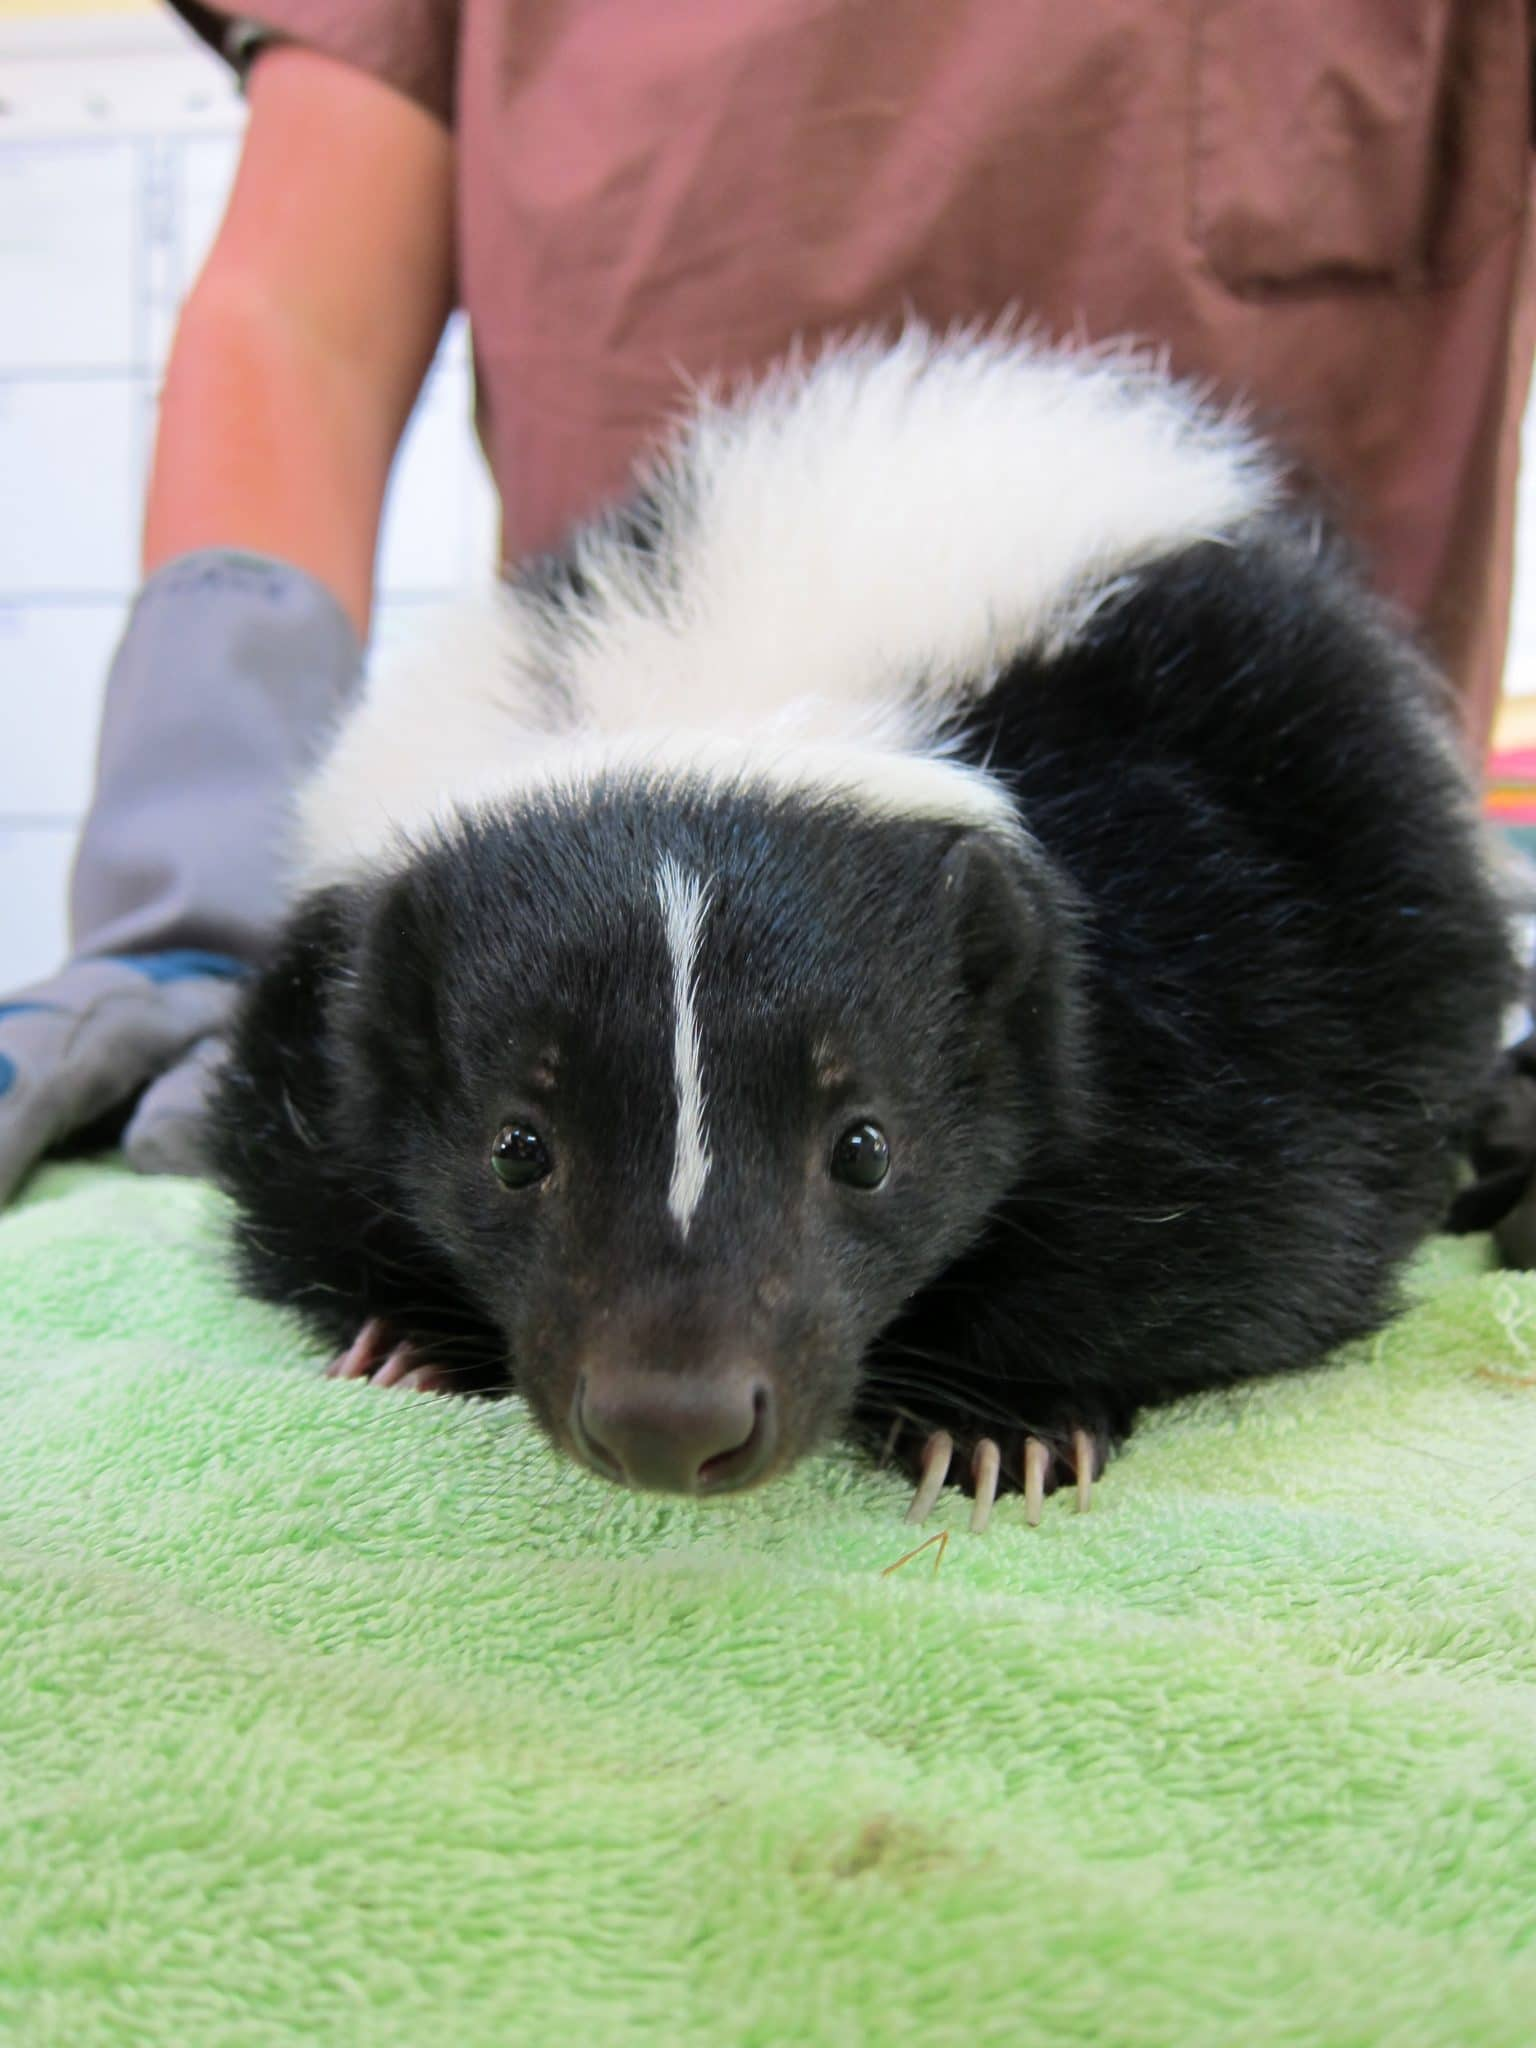 Skunk at WildCare. Photo by Alison Hermance